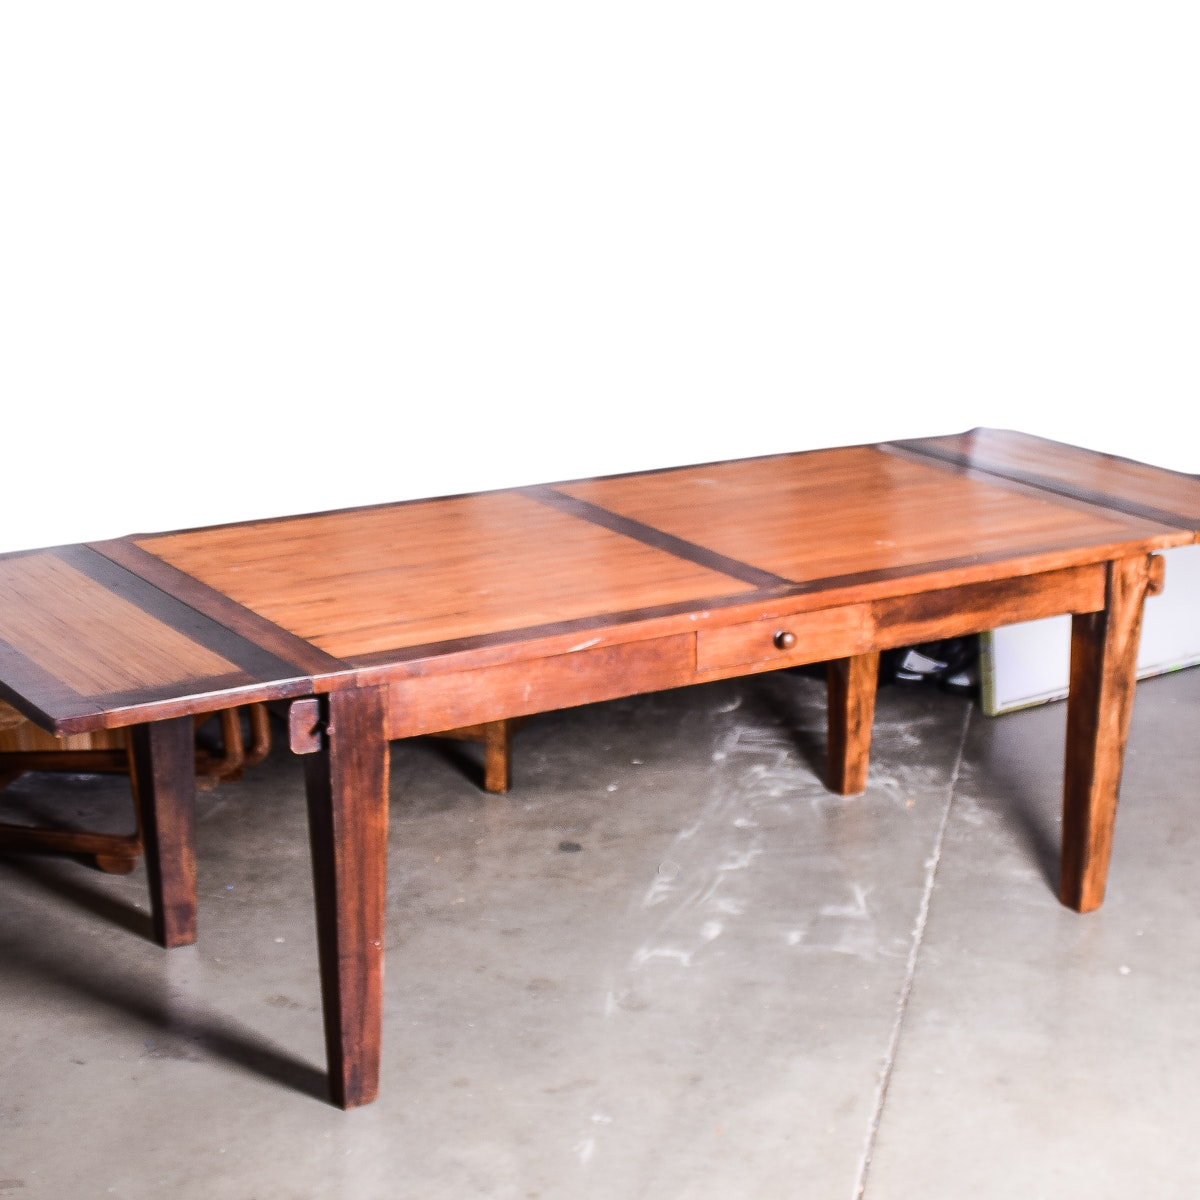 Dining Room Table With Two Extension Leaves : EBTH